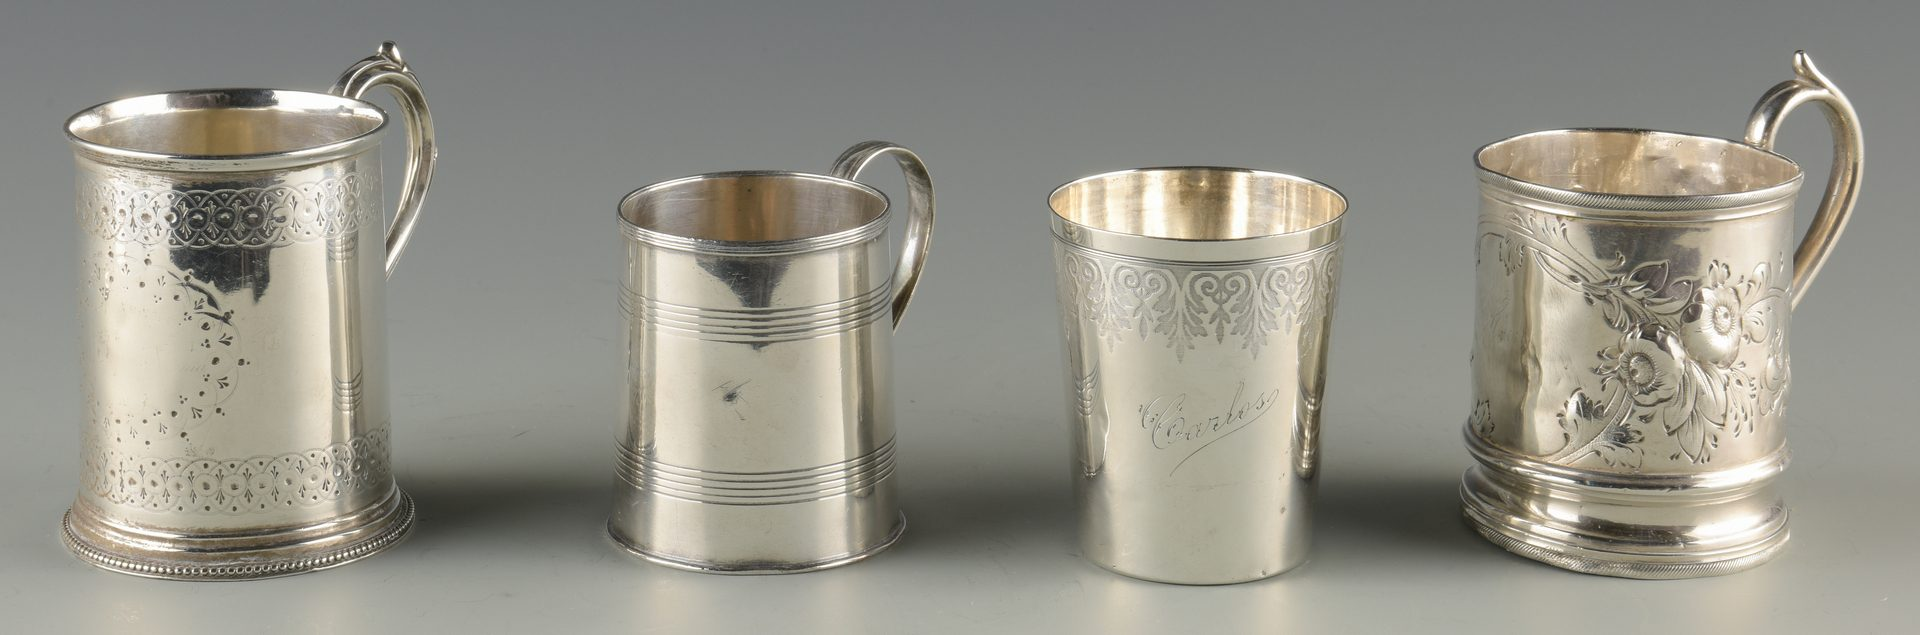 Lot 897: 4 Cups inc. Coin, Sterling, French